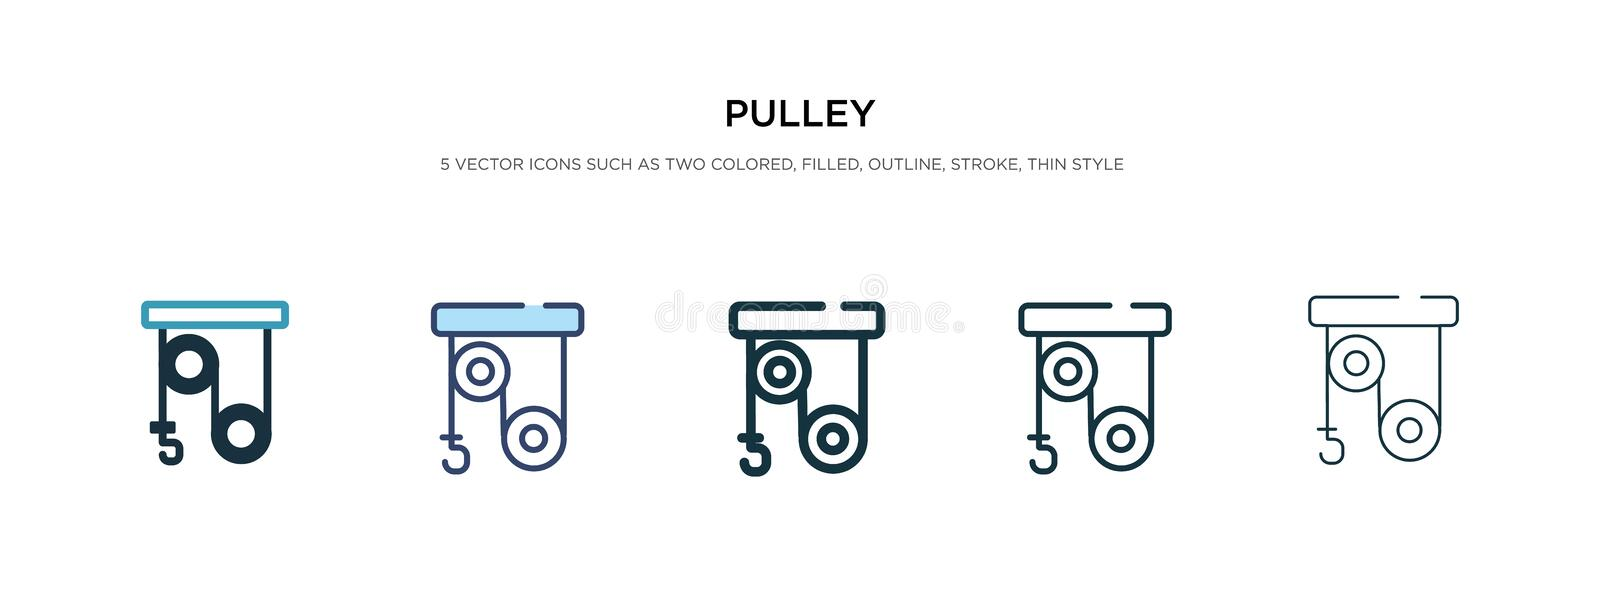 Pulley icon in different style vector illustration. two colored and black pulley vector icons designed in filled, outline, line royalty free illustration